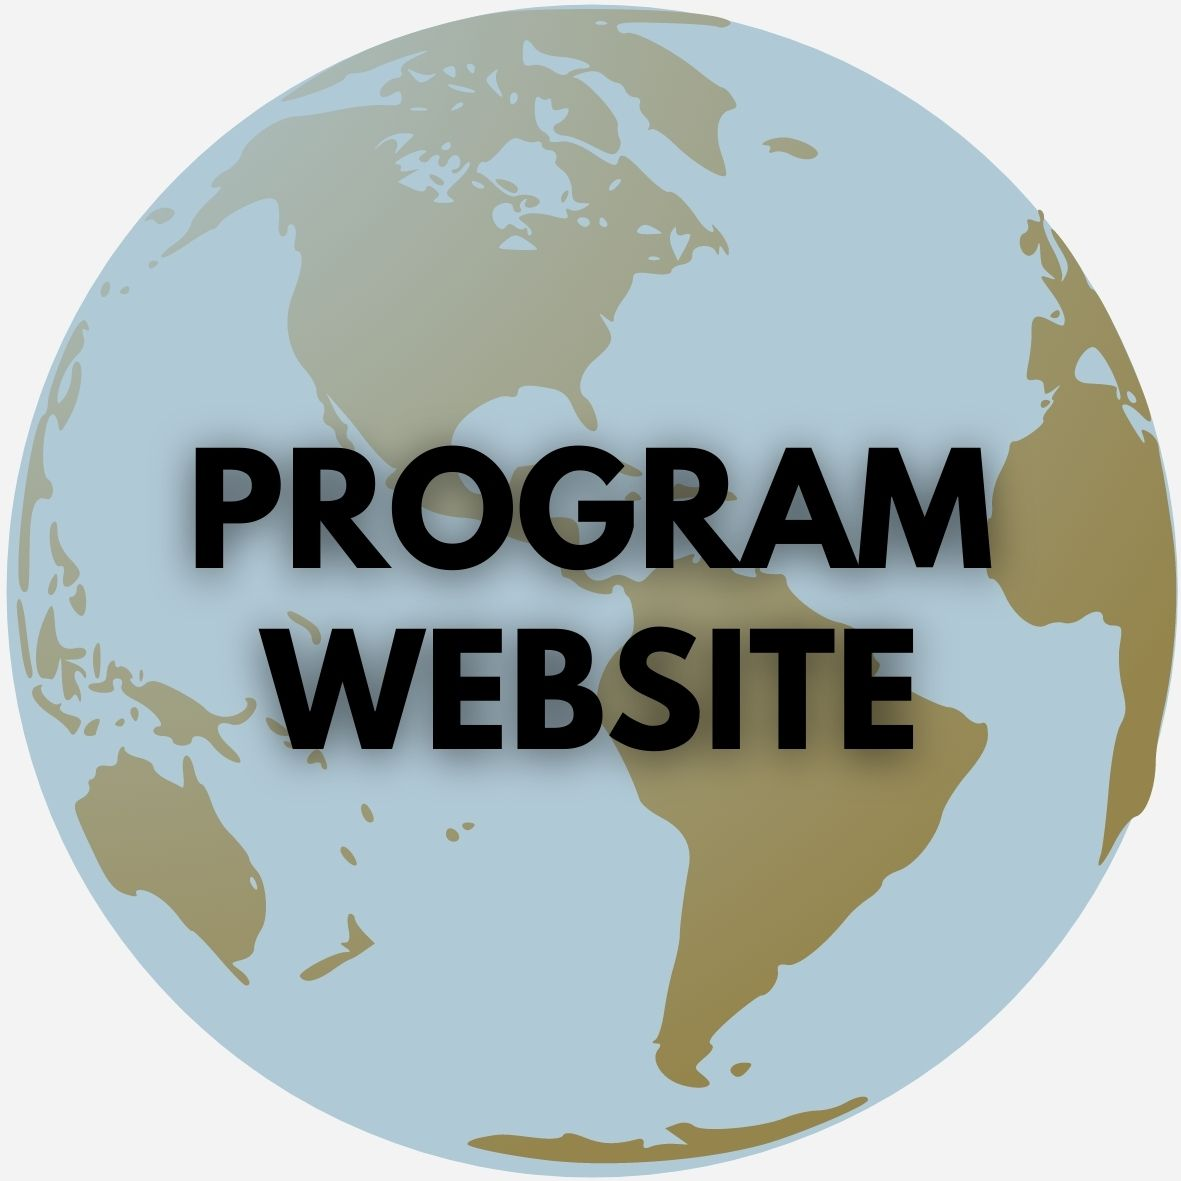 Program website